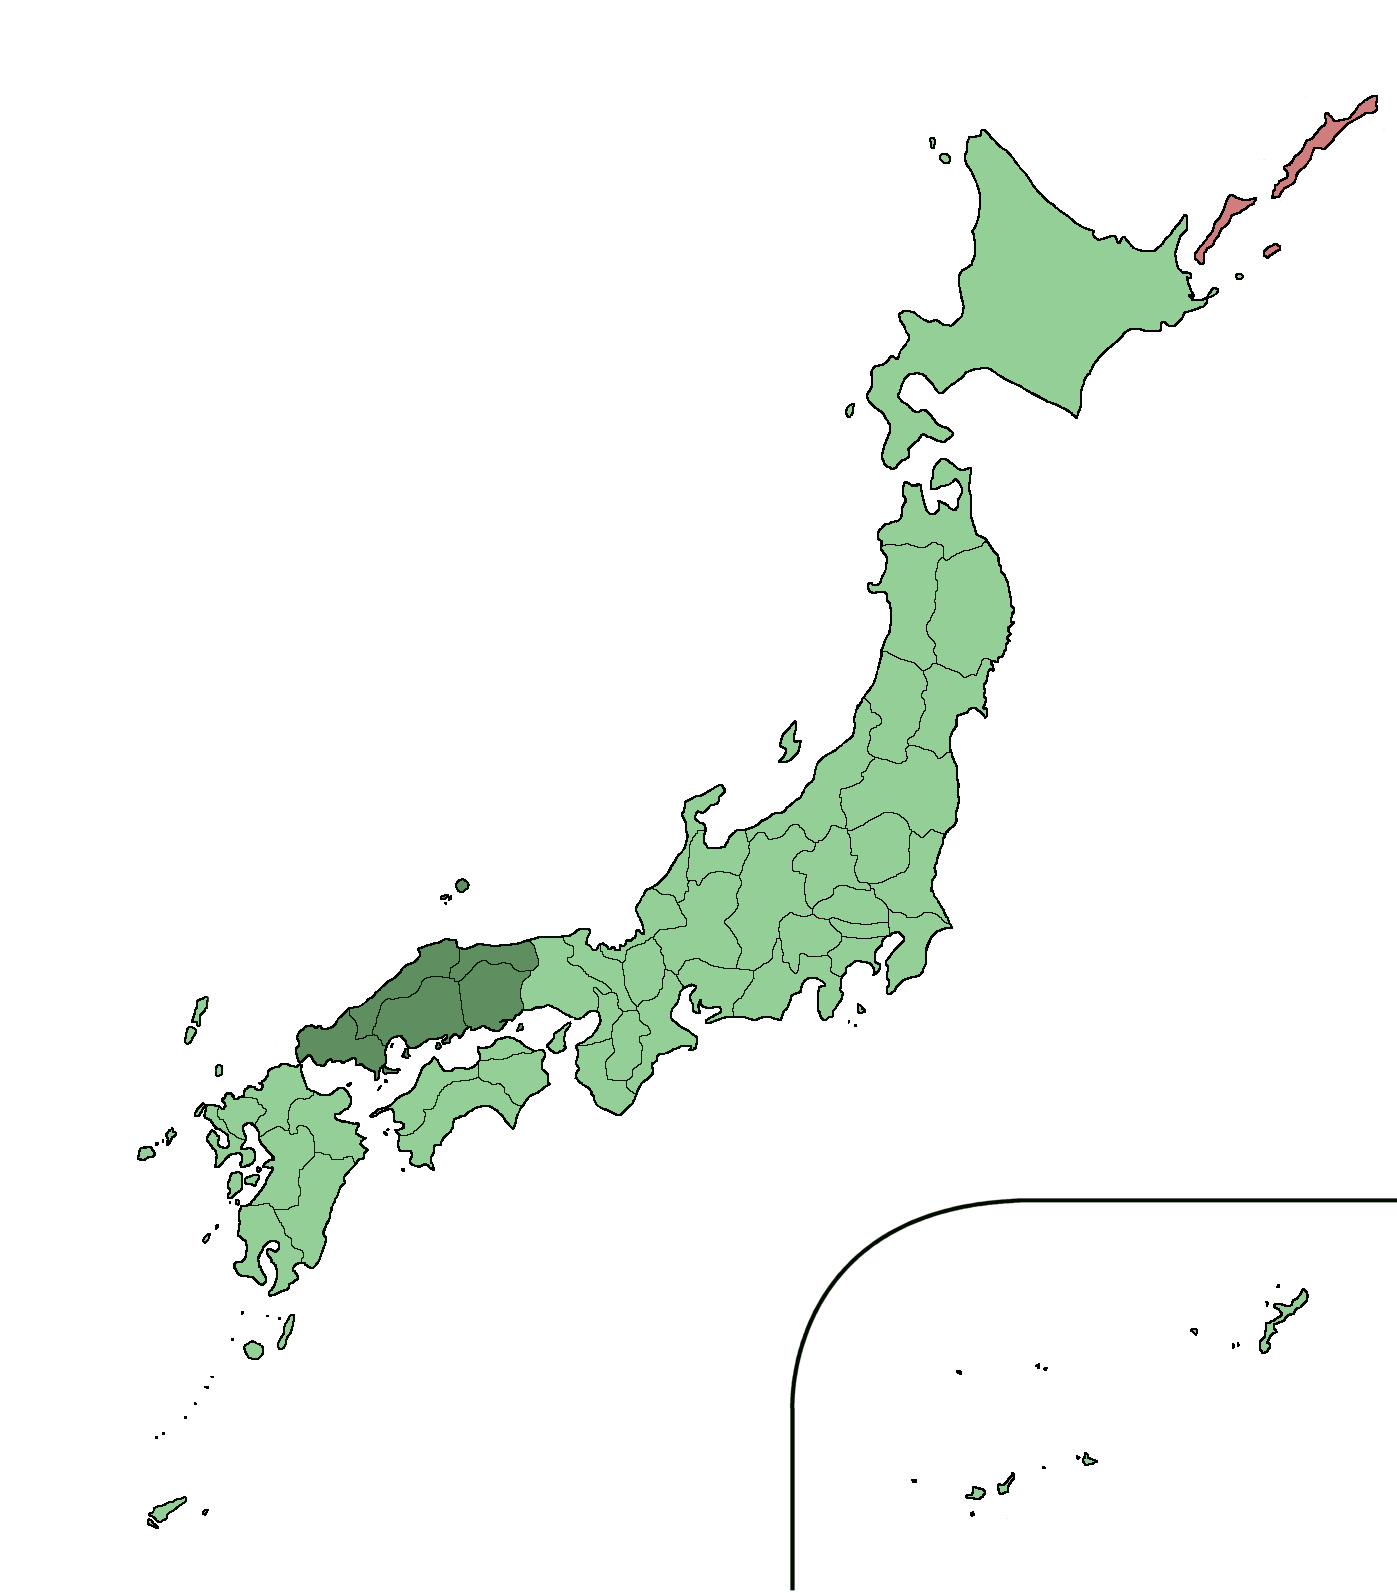 File:Japan Chugoku Region large.png - Wikipedia, the free encyclopedia